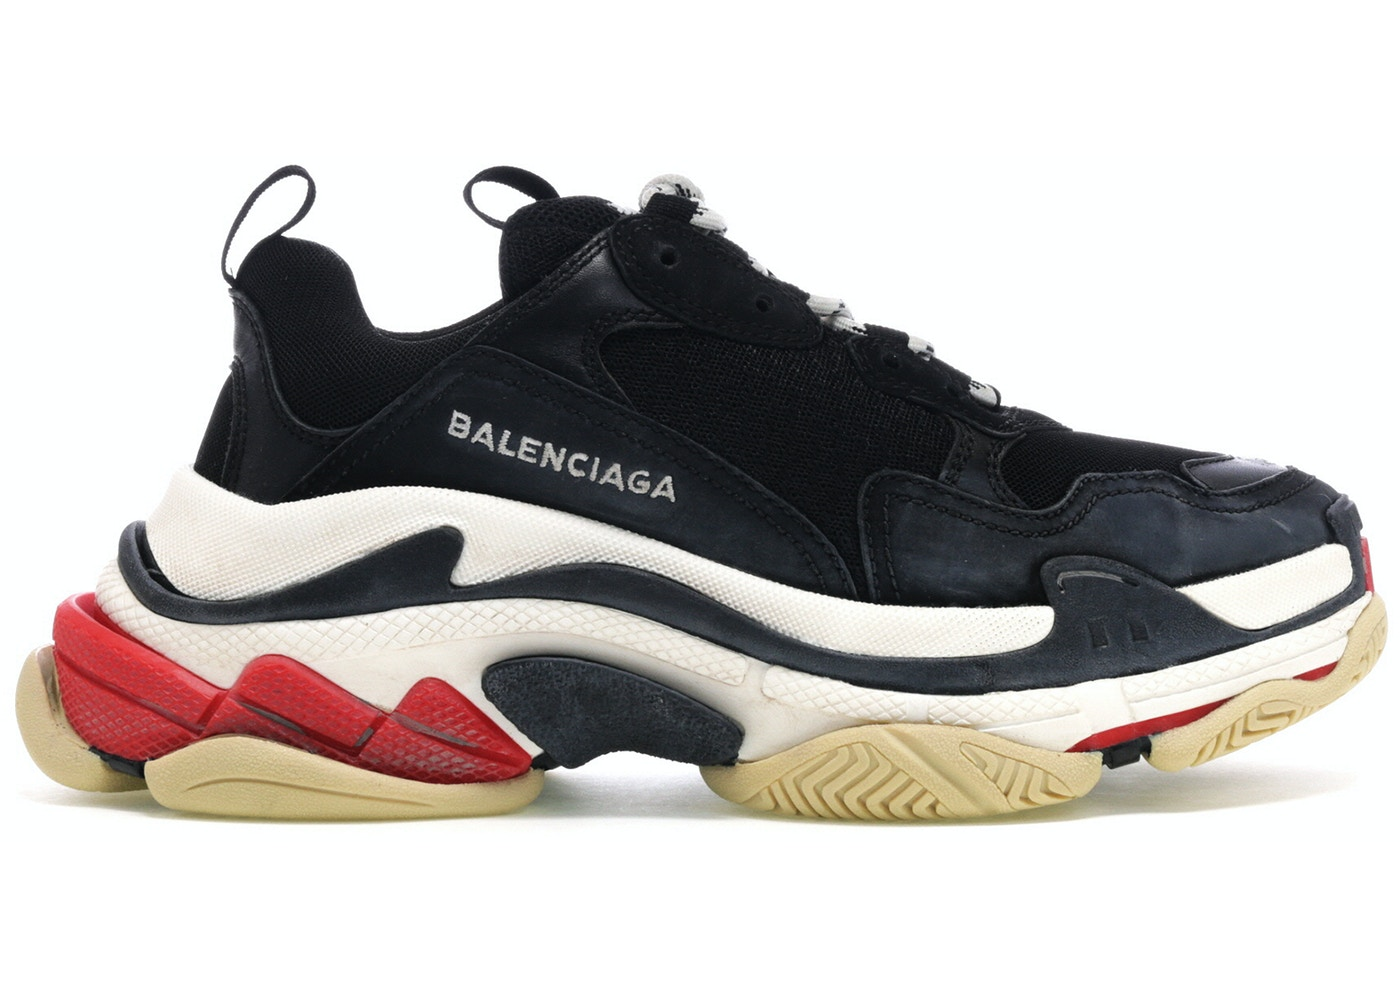 b740a0f8d0e Balenciaga Triple S Black White Red - 483513-W06E1-1000